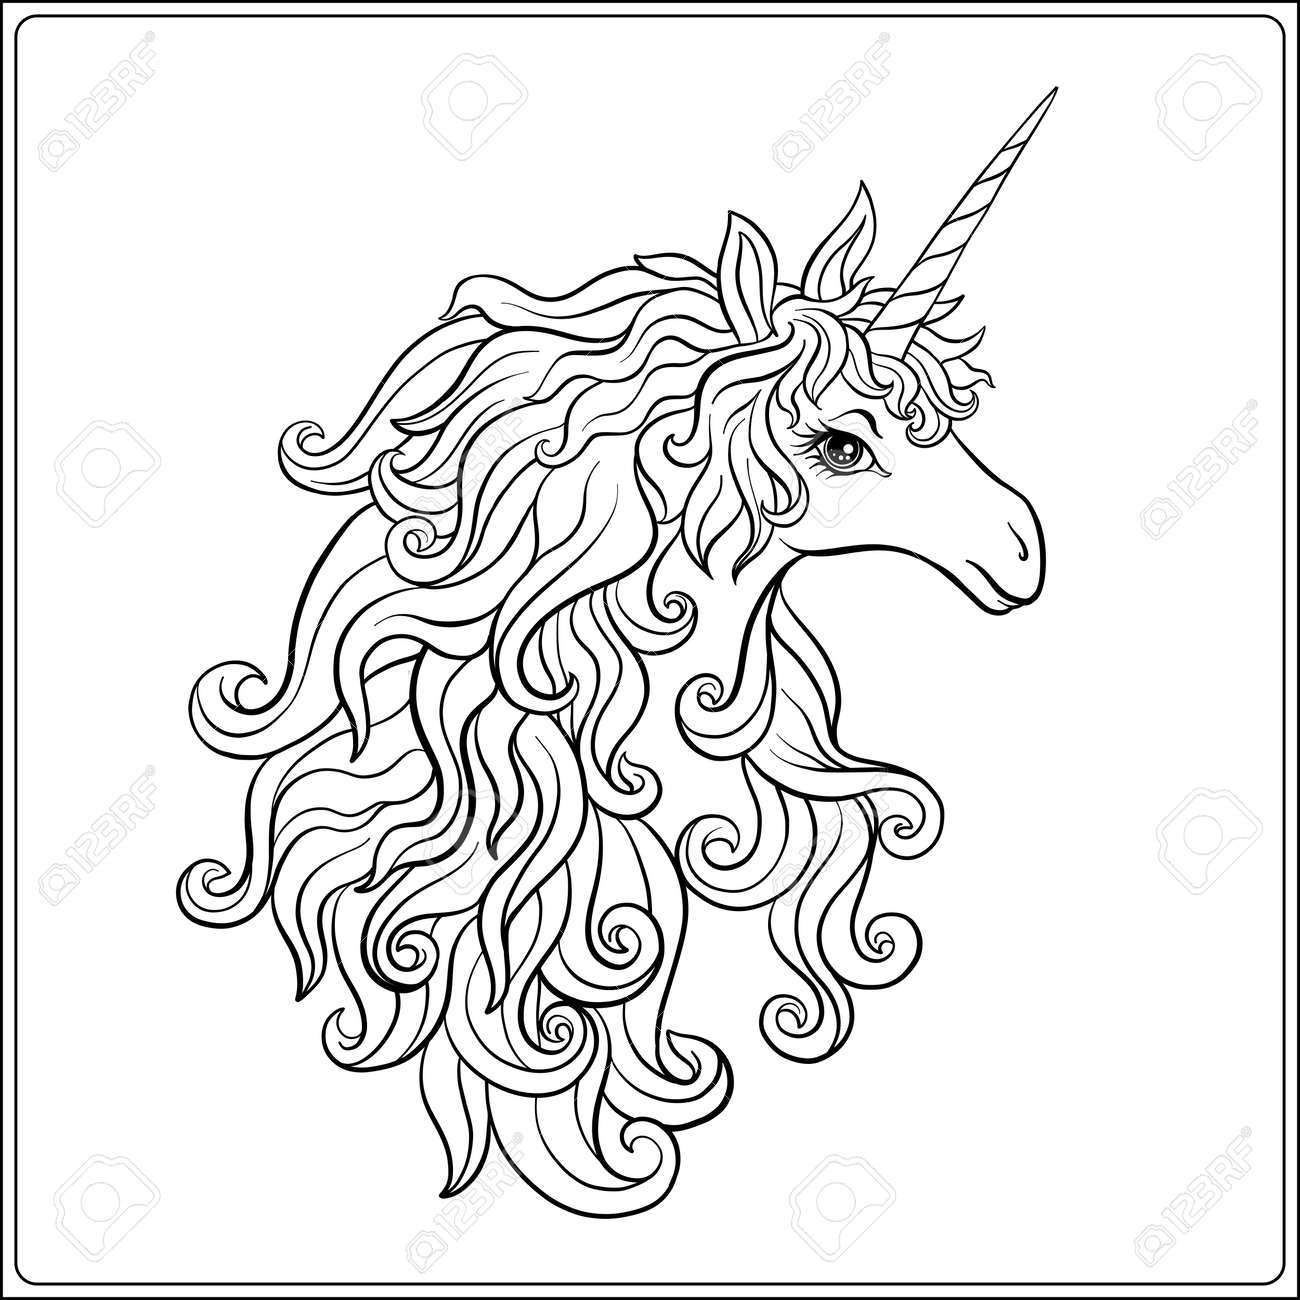 Outline drawing coloring page coloring book for adult stock vector stock